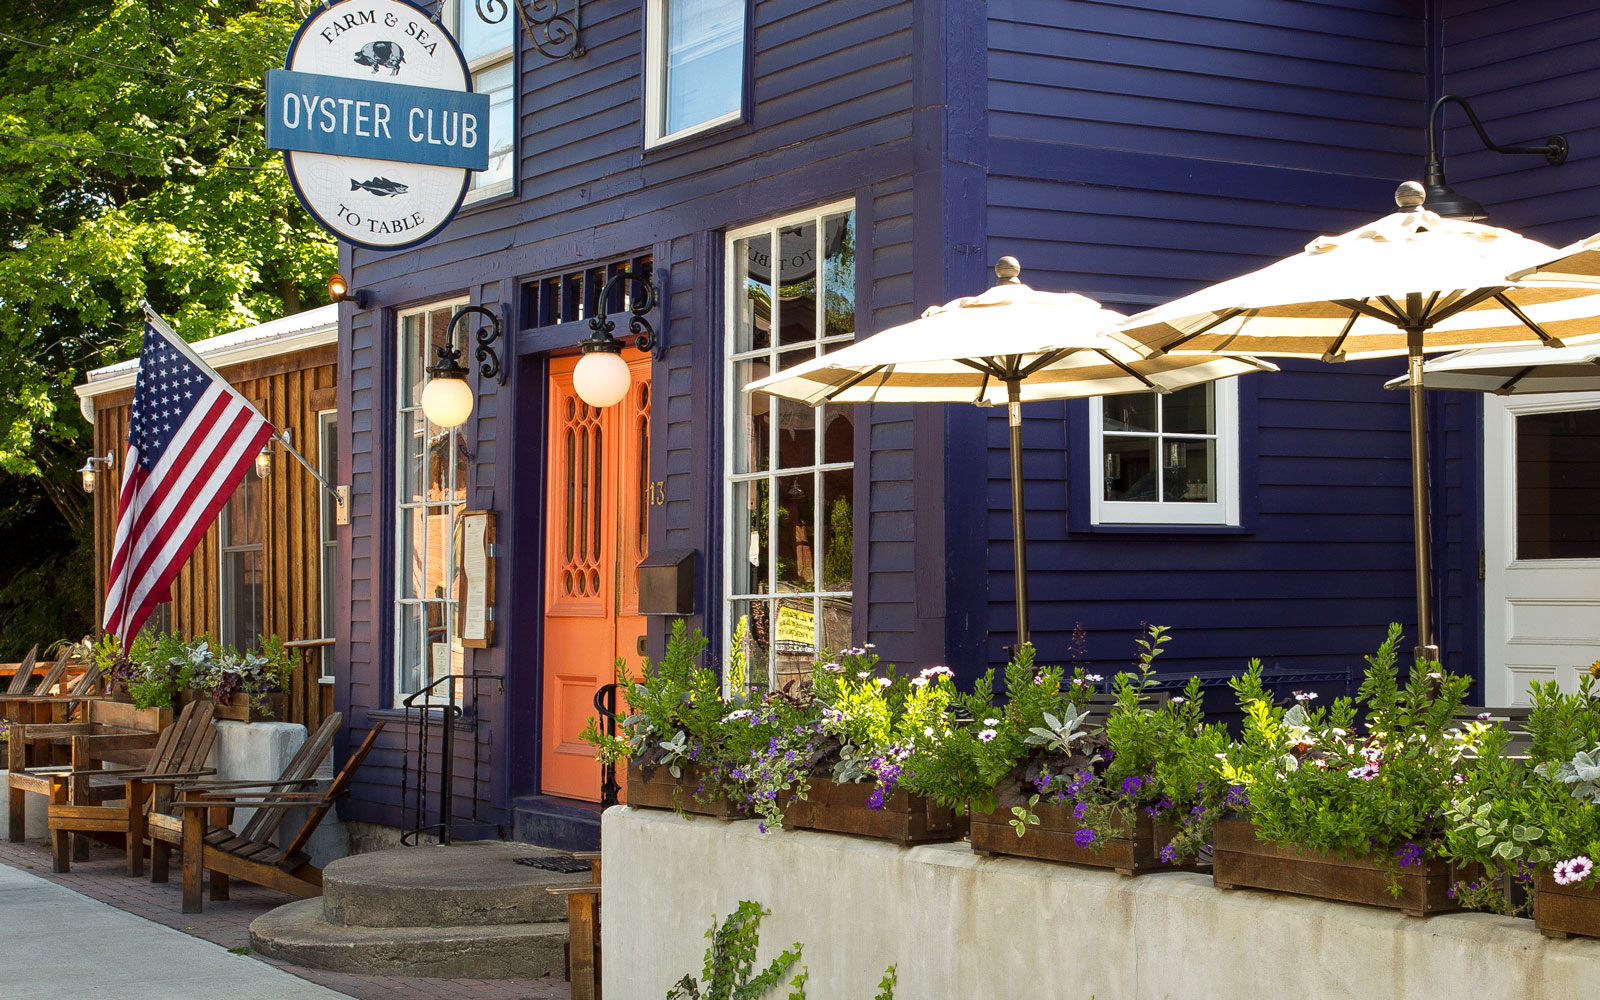 Best Oyster Bars in America: Oyster Club, Mystic, CT